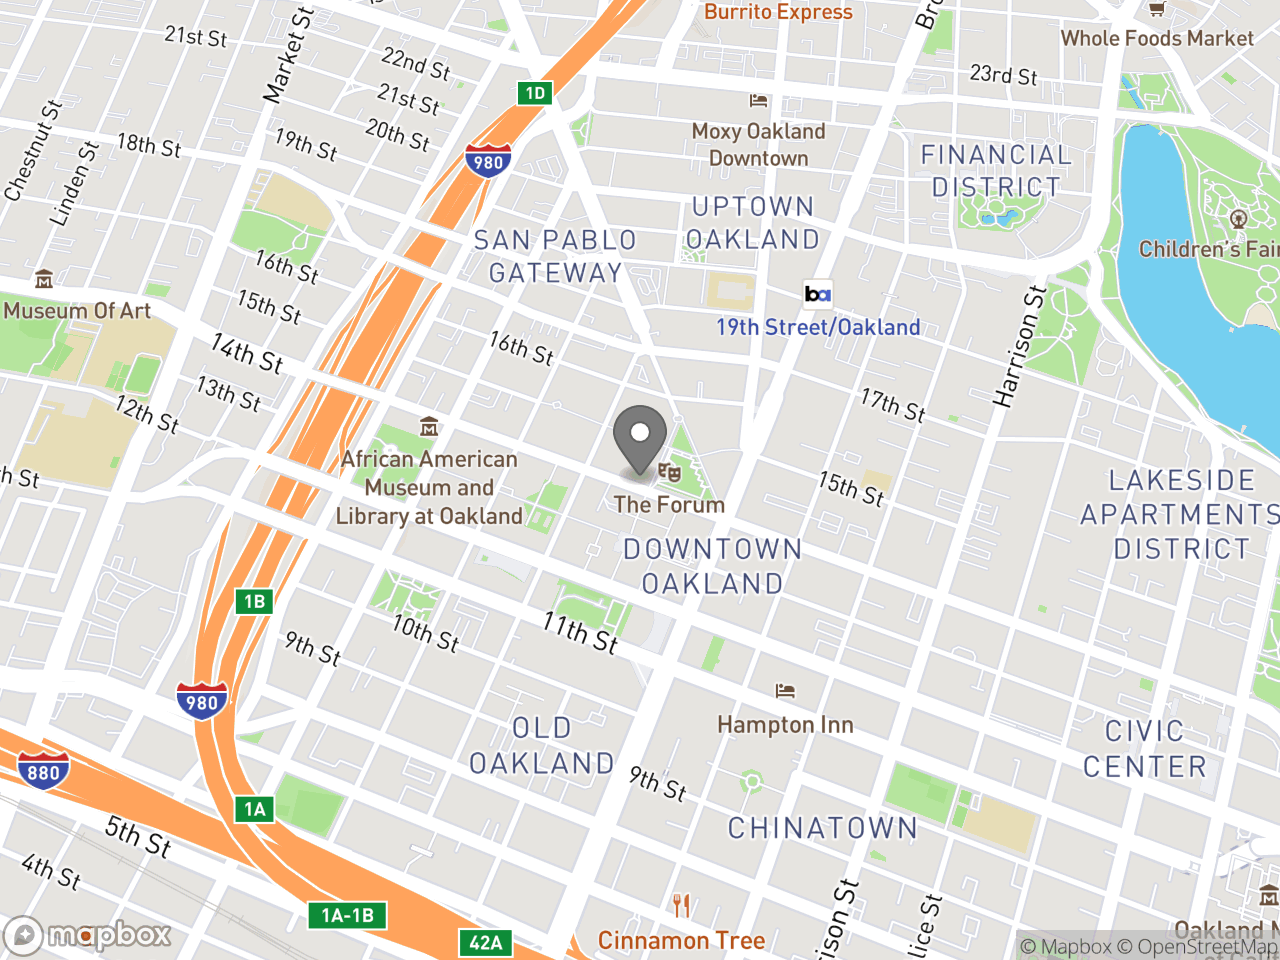 Map location for Mayor's Commission on Persons with Disabilities, May 20, 2019, located at 1 Frank H Ogawa Plaza in Downtown Oakland, CA 94612